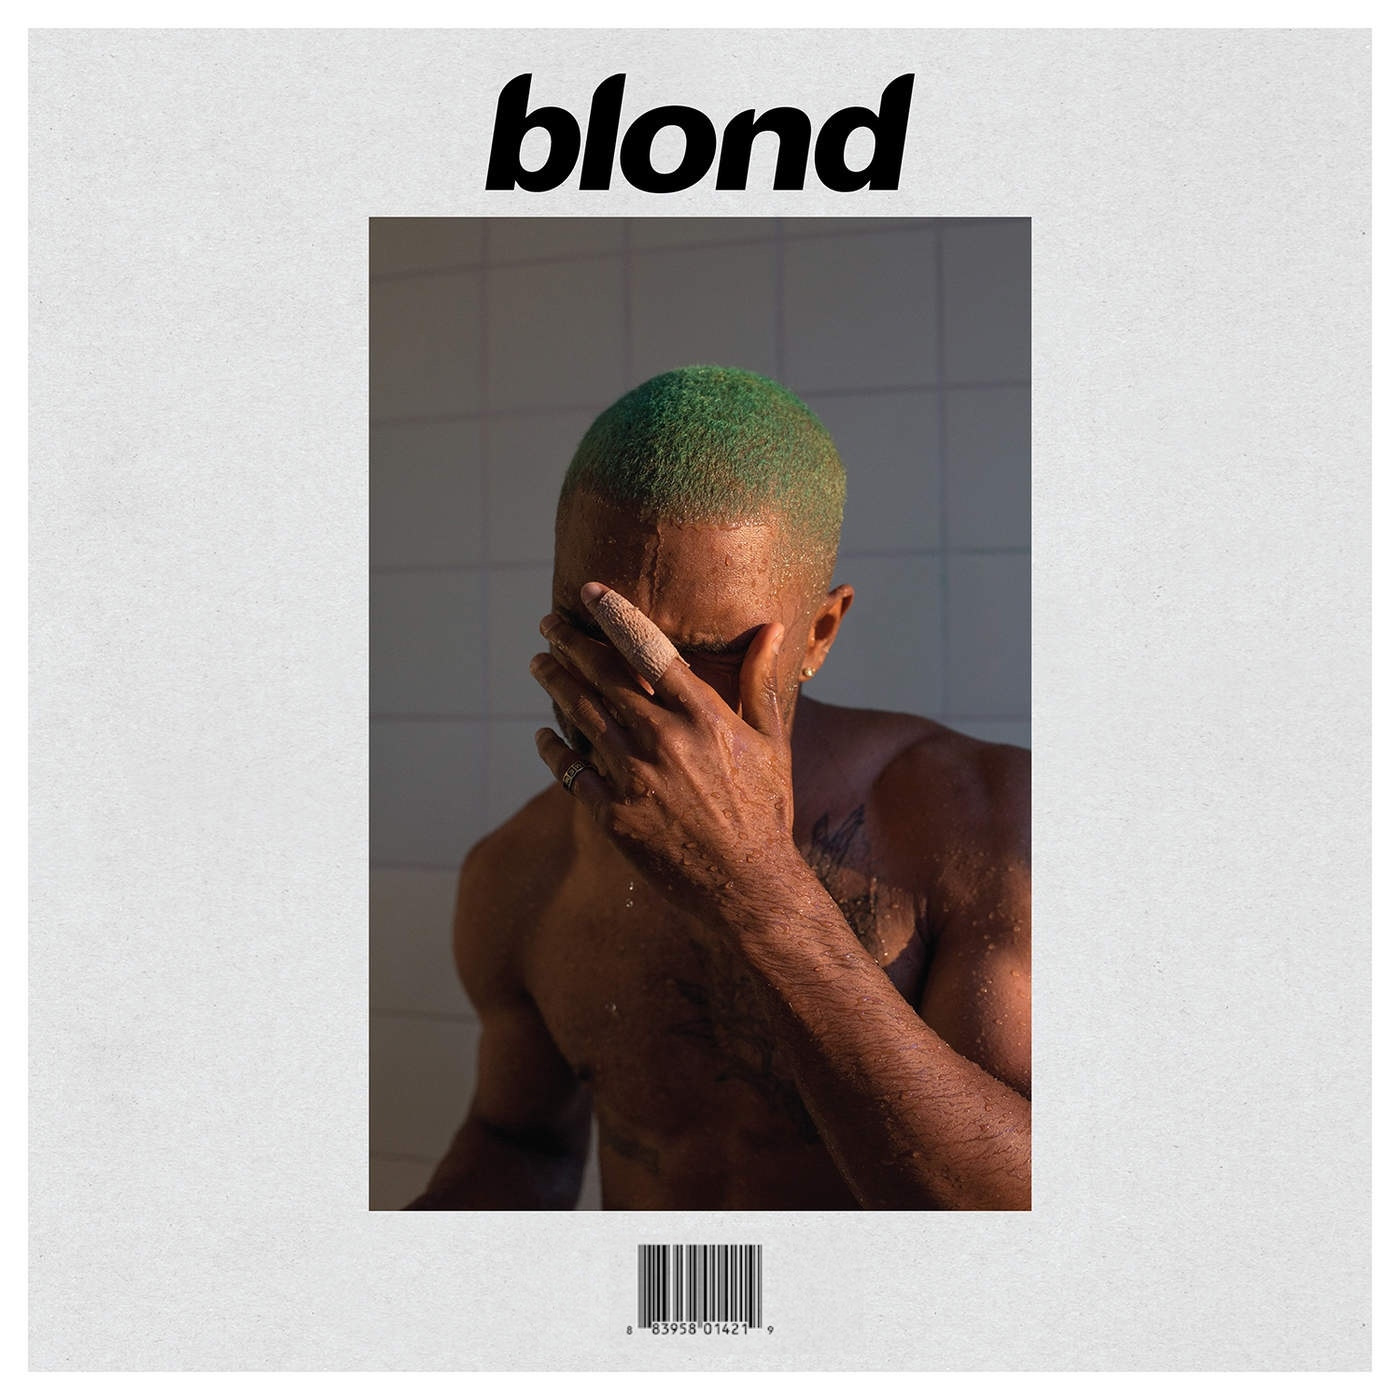 Frank Ocean, covering his face in the shower, with a green buzzcut.